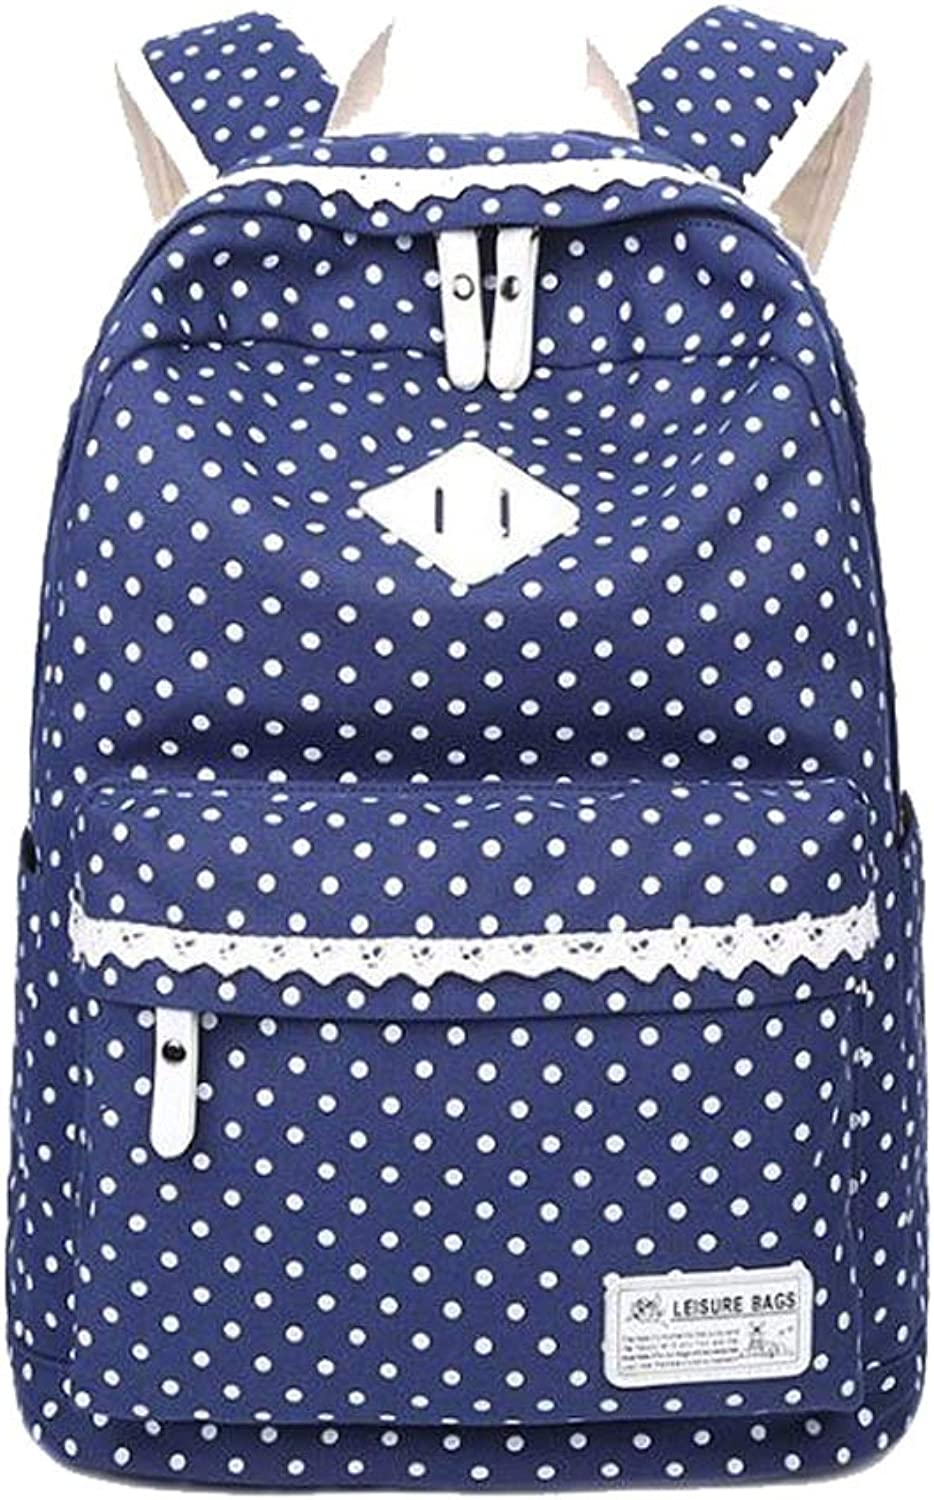 Women's Version Of The Backpack Wave Point Middle School Student Bag Leisure Travel Canvas Shoulder Bag (color   Navy blueee, Size   30  16.5  42cm)